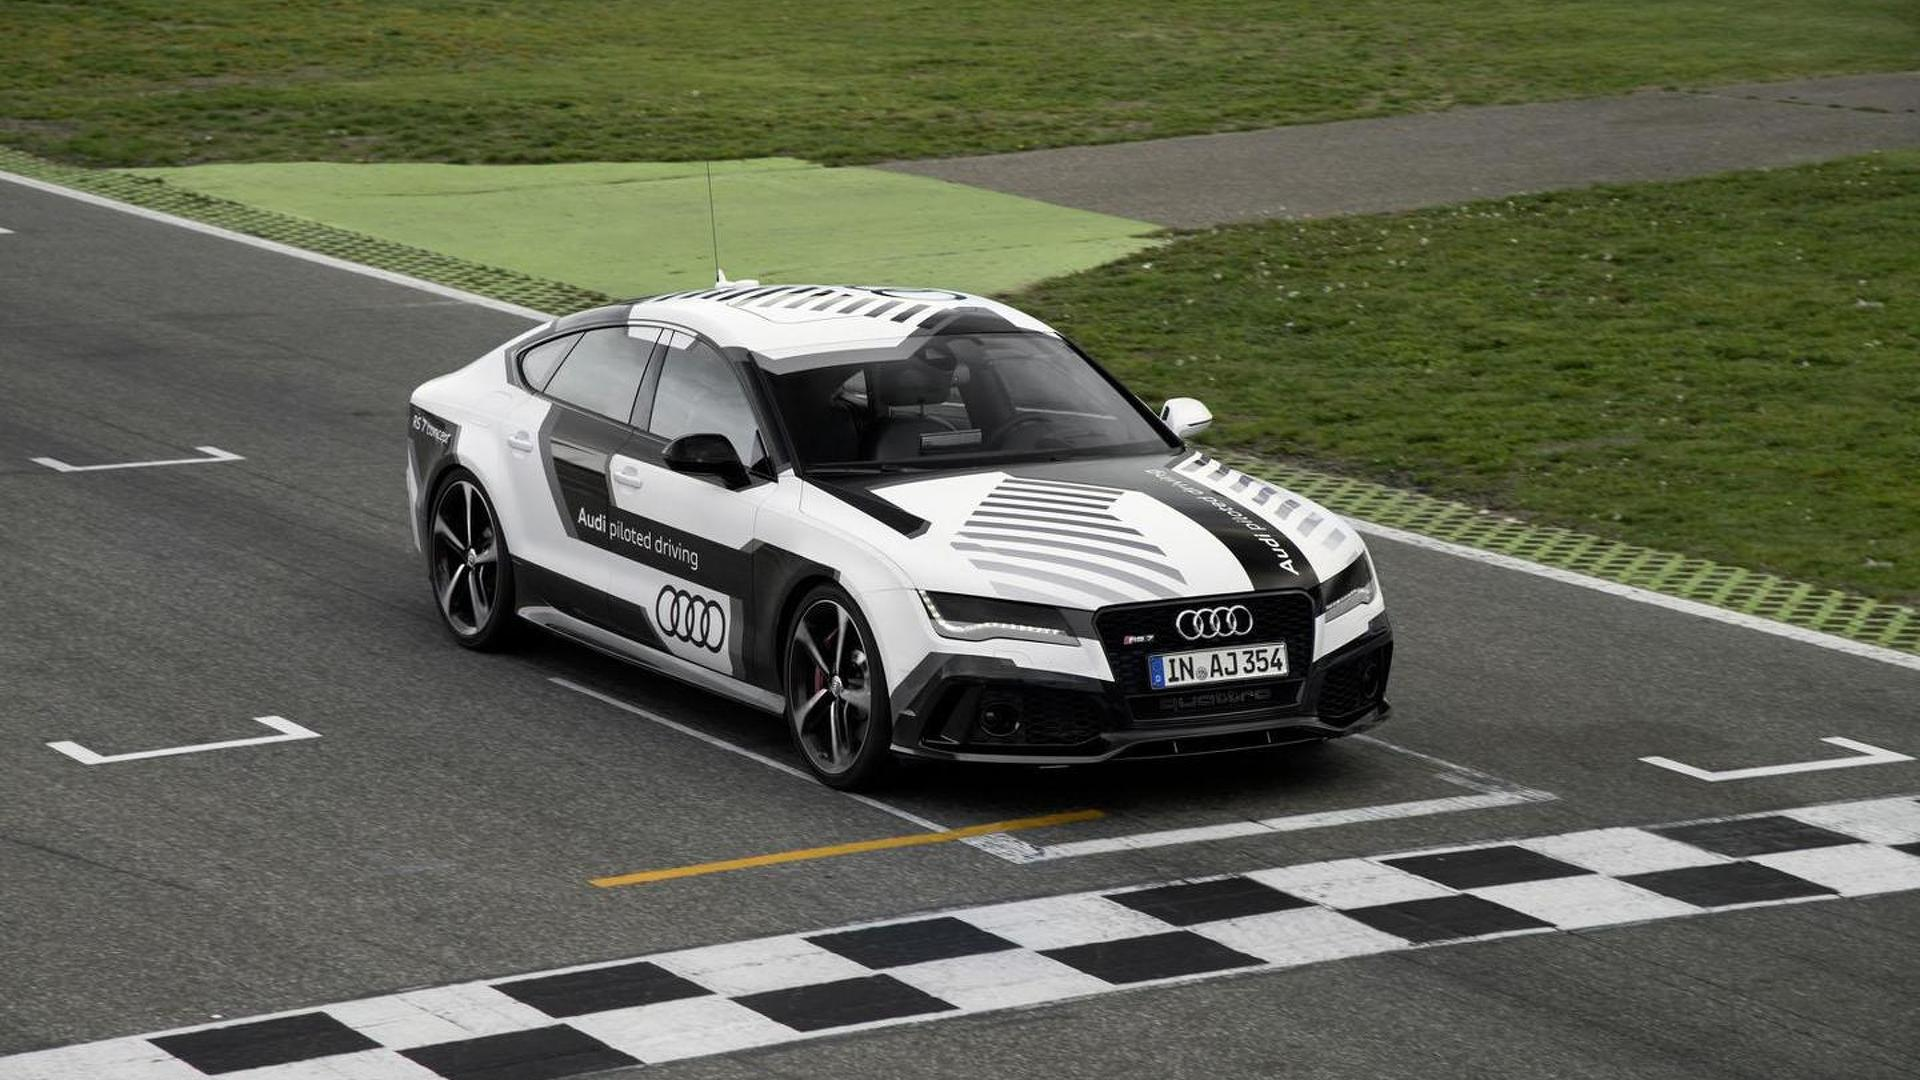 Audi Piloted Driving >> Audi Rs7 Piloted Driving Concept Demonstrated At Hockenheim Video